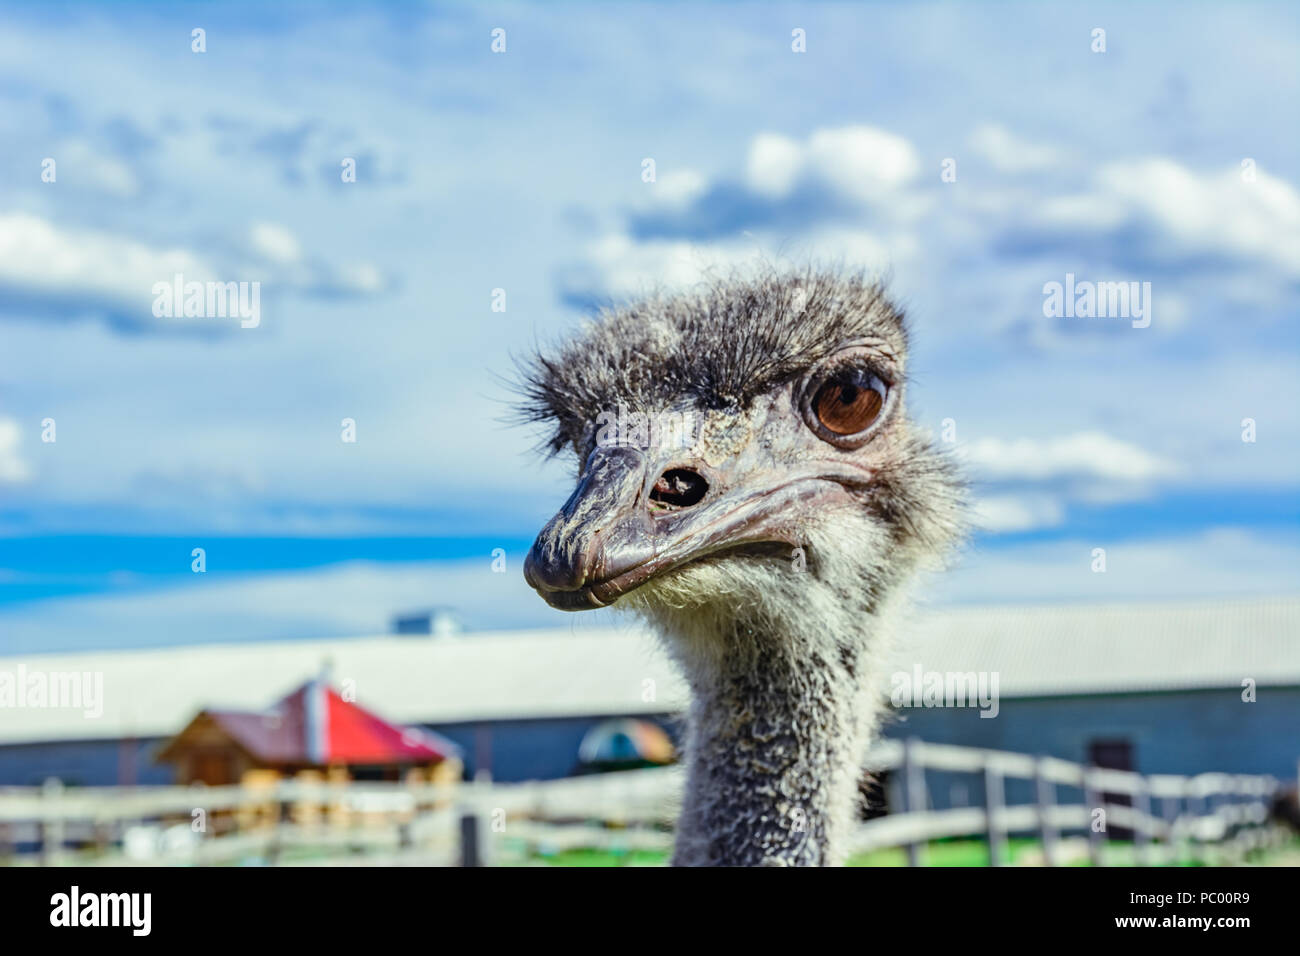 Ostrich in a farm with green grass and blue sky looking through fence Stock Photo